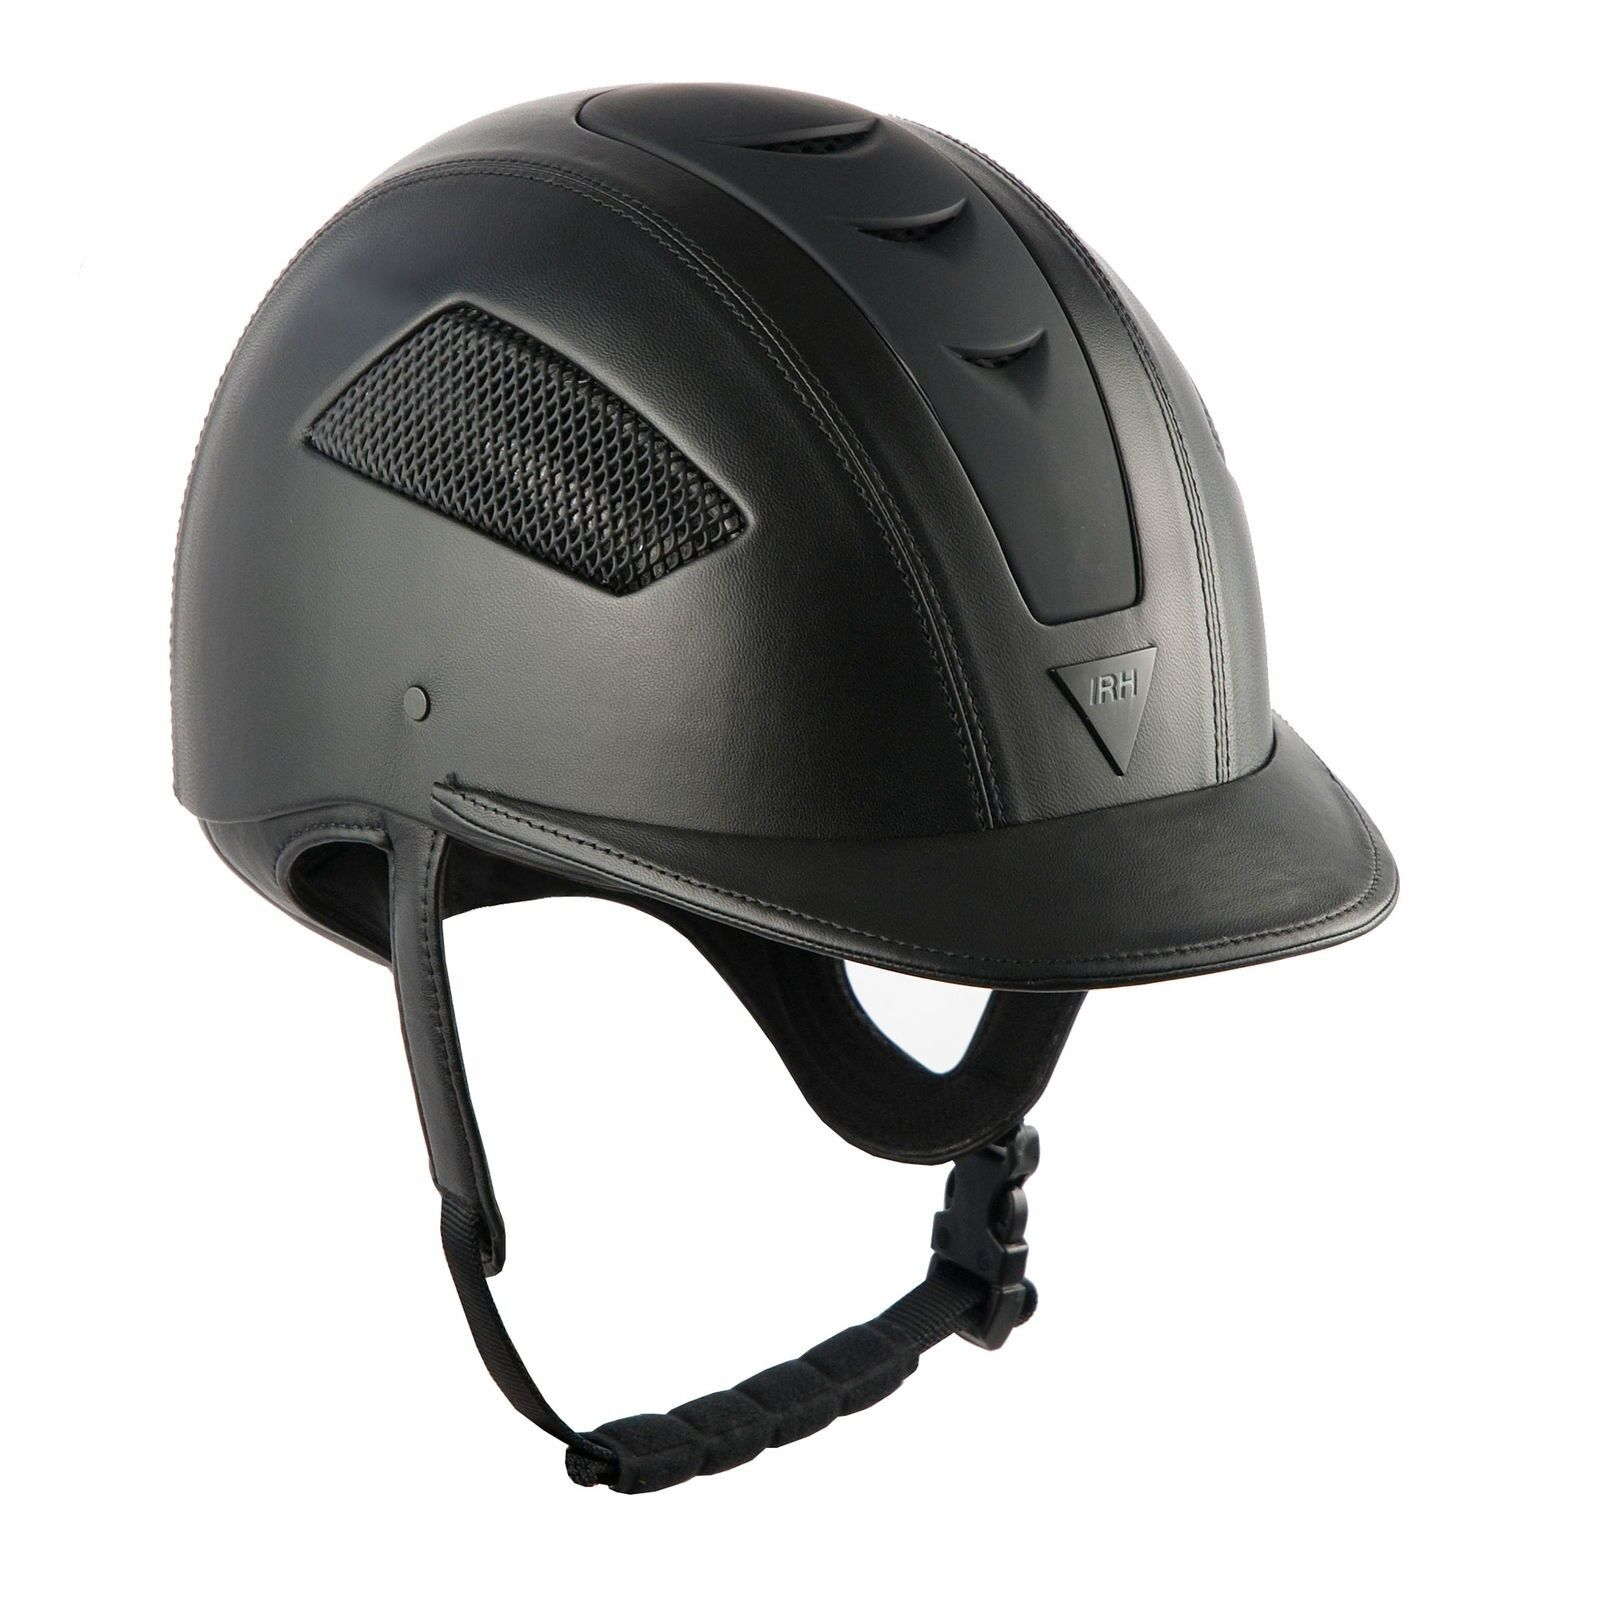 IRH Elite Ultra Riding Helmet Leather Coverosso with Matte Finished Vents